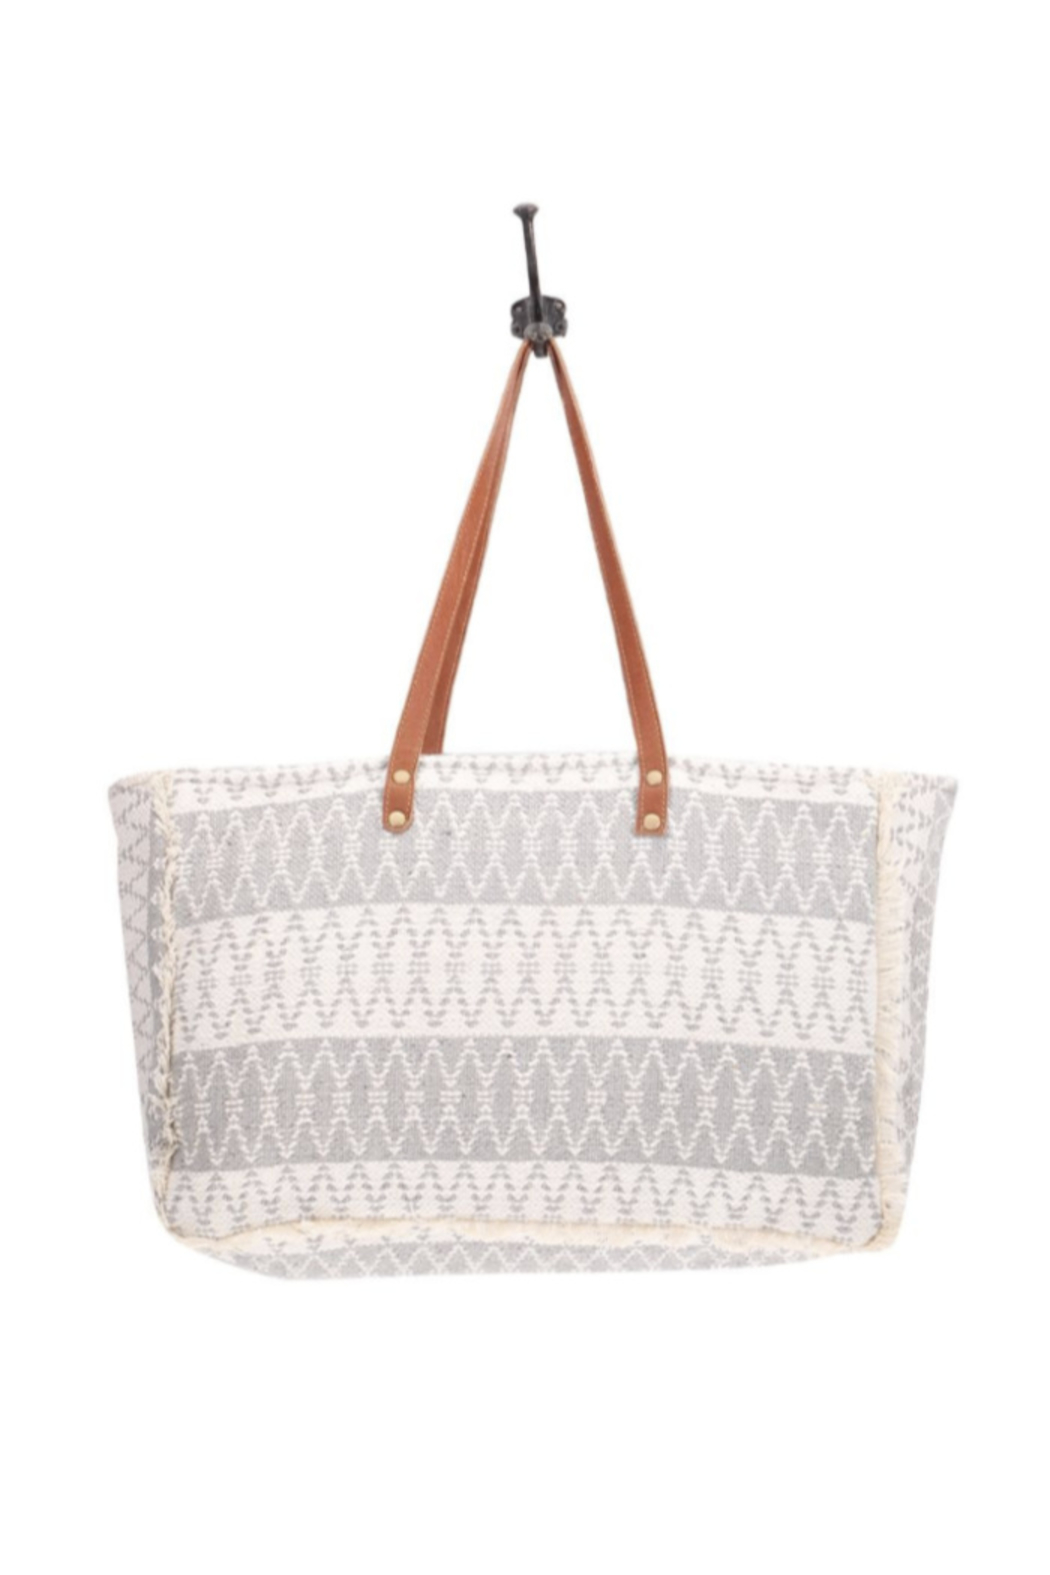 Myra Bags Snowy Weekender Bag From Tennessee By Terri Leigh S Shoptiques From leather weekend bags to weekend bags with wheels, you won't want to leave for your short break without these chic weekender bags for women. shoptiques